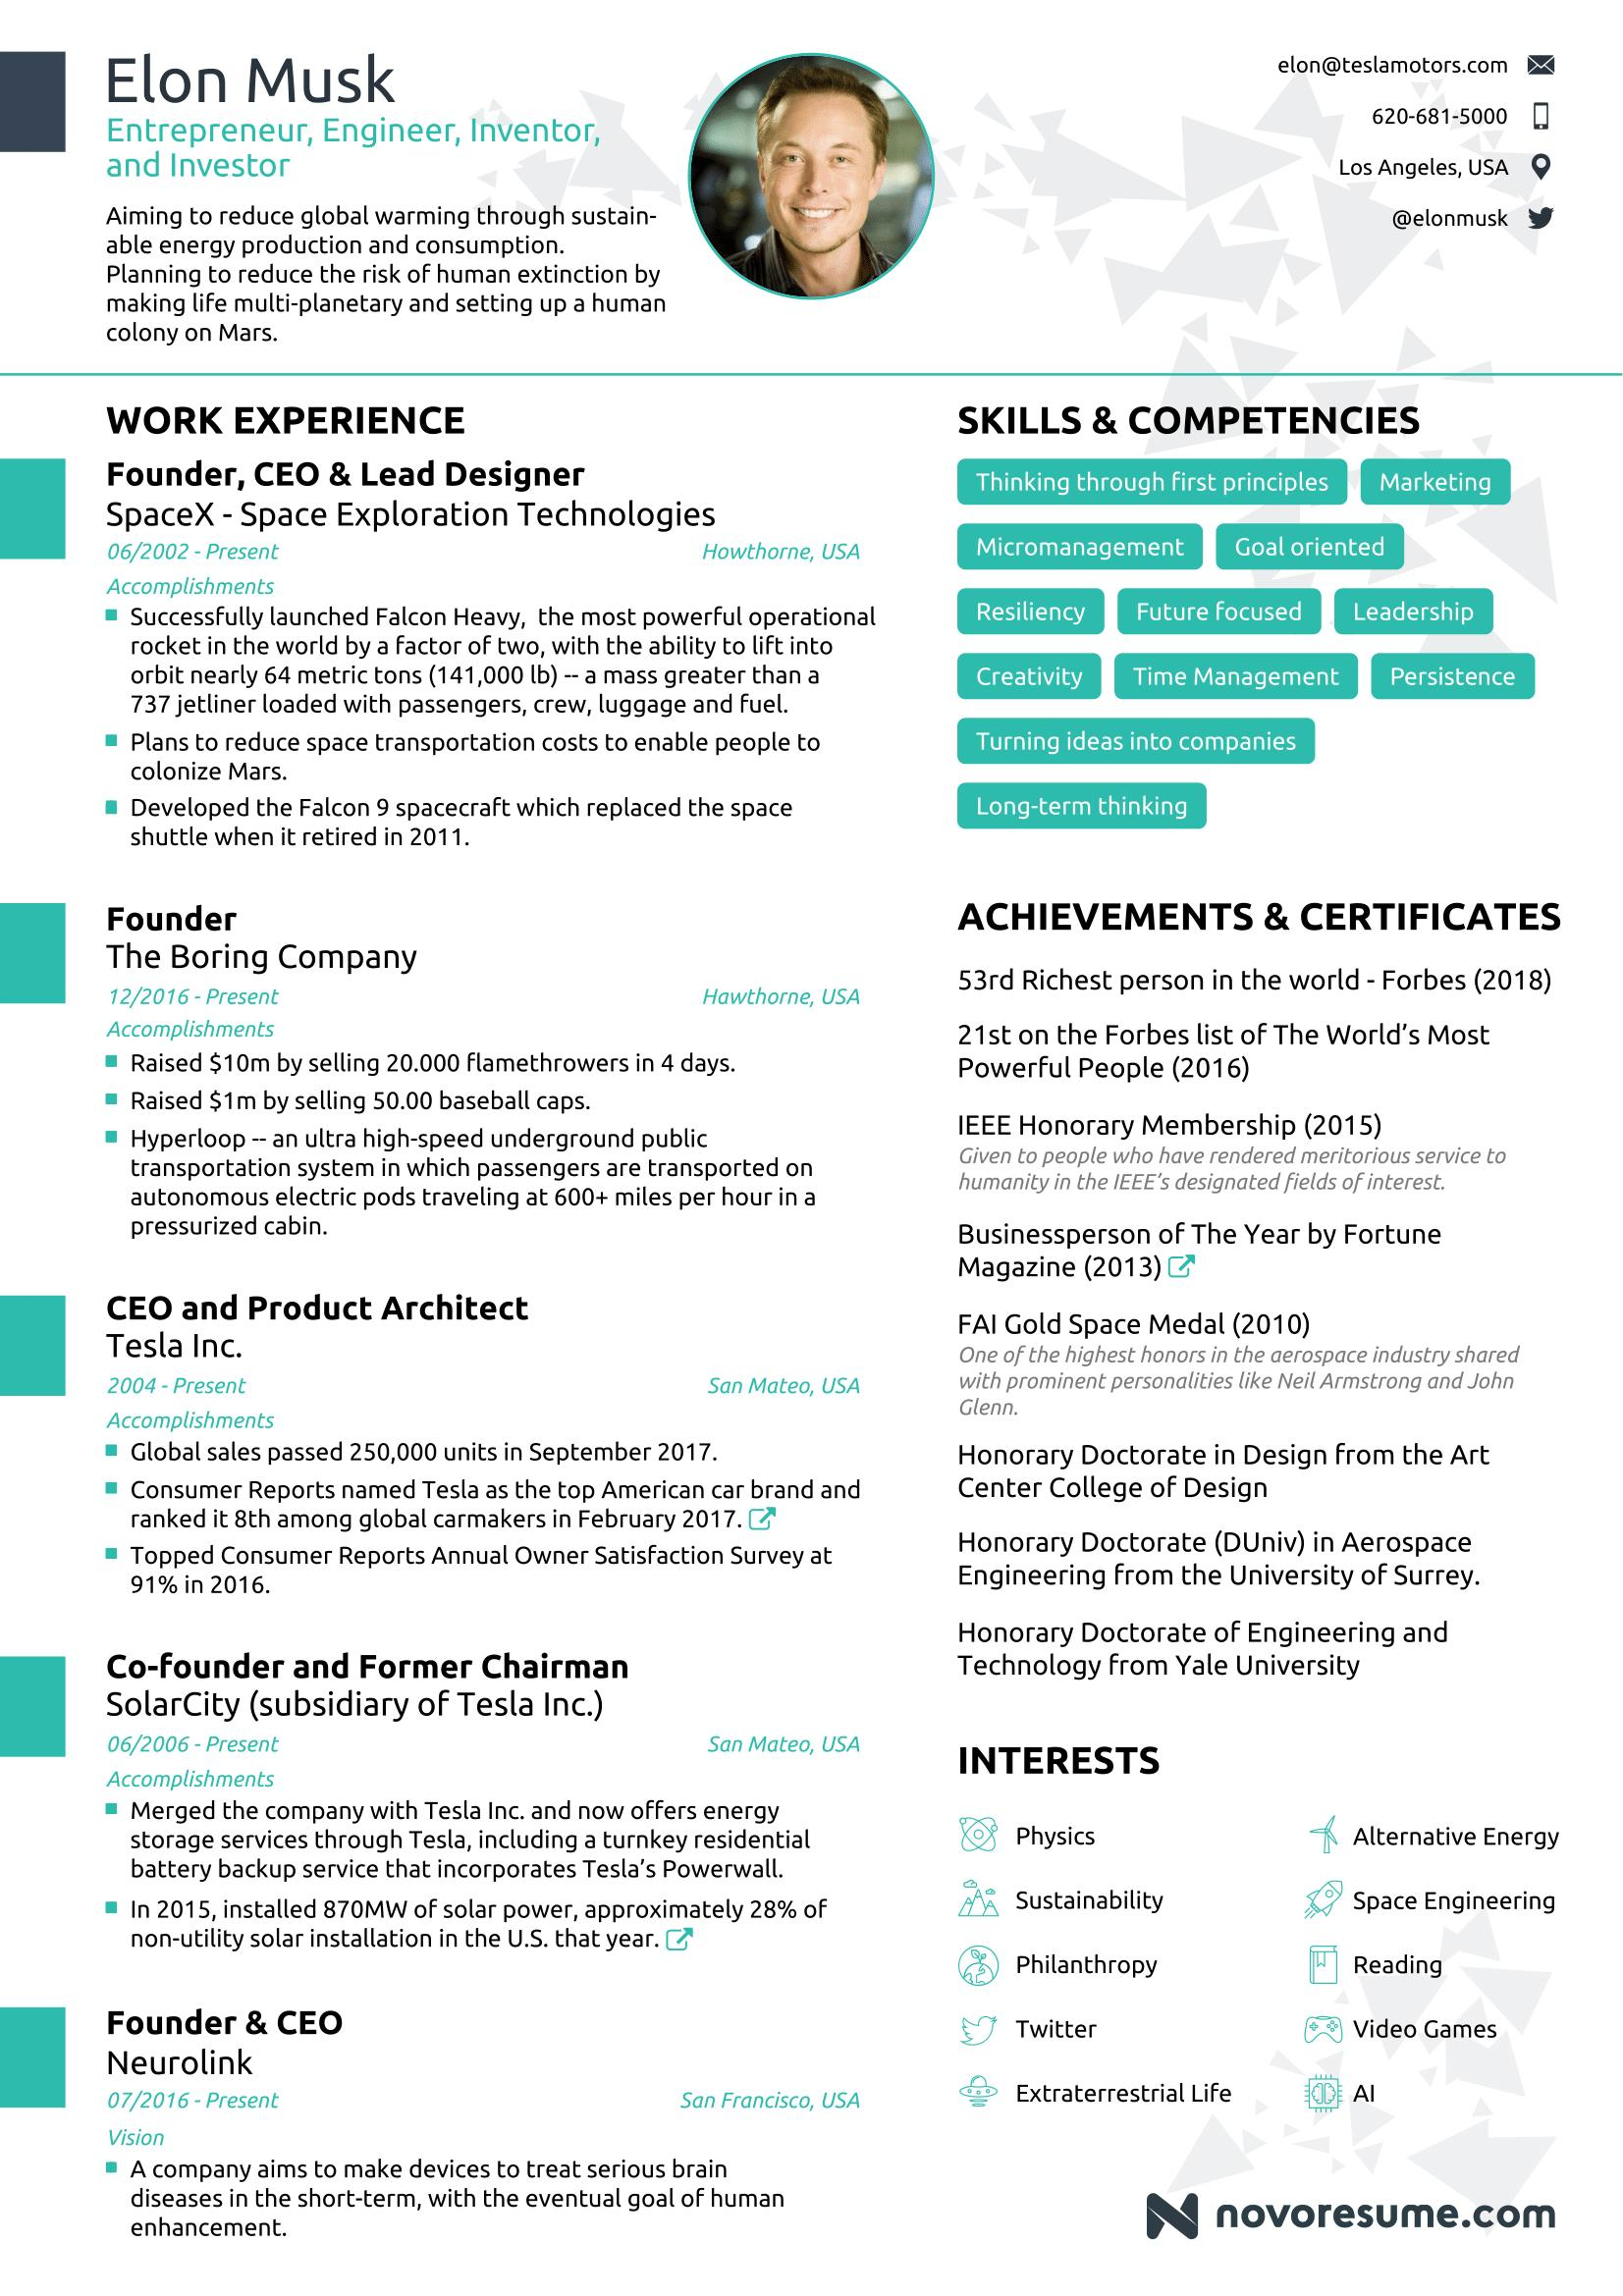 73 Beautiful One Page Resume Site with Pictures